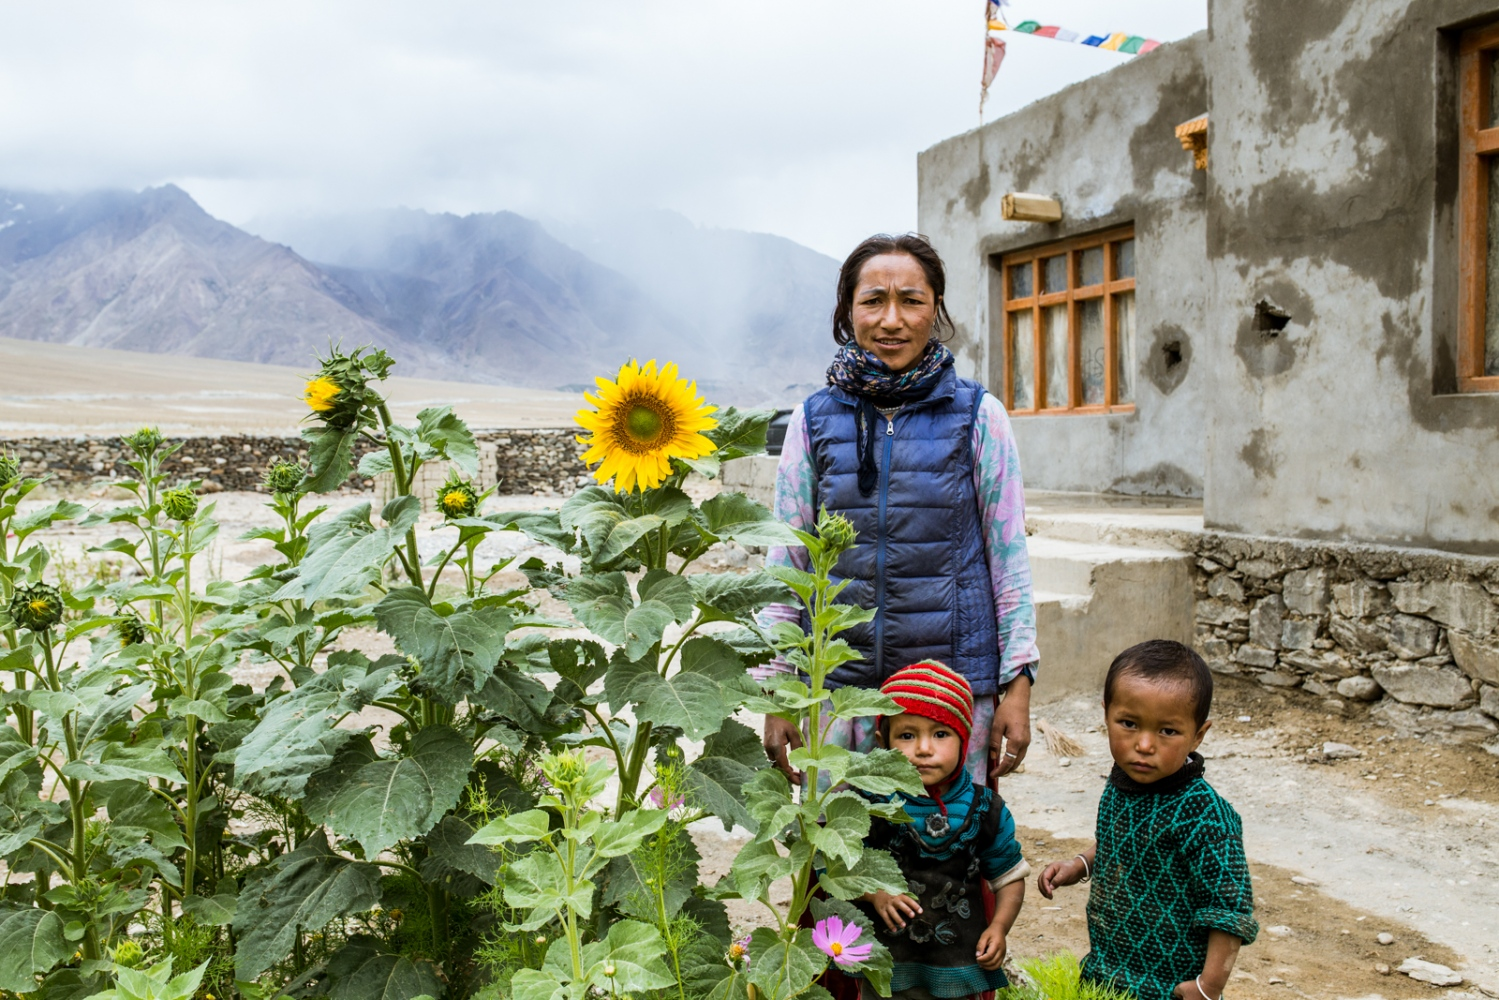 Tazin Chezen, a resident of Lower Kumik village in the Zanskar Valley, Indian Himalaya, stands with her two children outside their newly built home. In recent decades past, Tazin's old village, Upper Kumik, as it is now called, has fallen into a state of perpetual drought. Upper Kumik, once relied on a glacier that ran down the mountain behind the village to supply them with ample water during the Summer months. Over the past decades due to warming impacts from climate change Upper Kumik's glacier has now completed retreated. These events forced people, like Tanzin, to relocate towards more reliable sources of water nearby the permanent Zanskar River on the valley floor. The relocation and search for water came with costs: disconnects between old and new communities, spending meagre saving to build a new home, and the canal that brought water up to the Lower Kumik from the river was destroyed by a lake outburst upriver. Now, both Lower and Upper Kumik resemble one another, waterless.